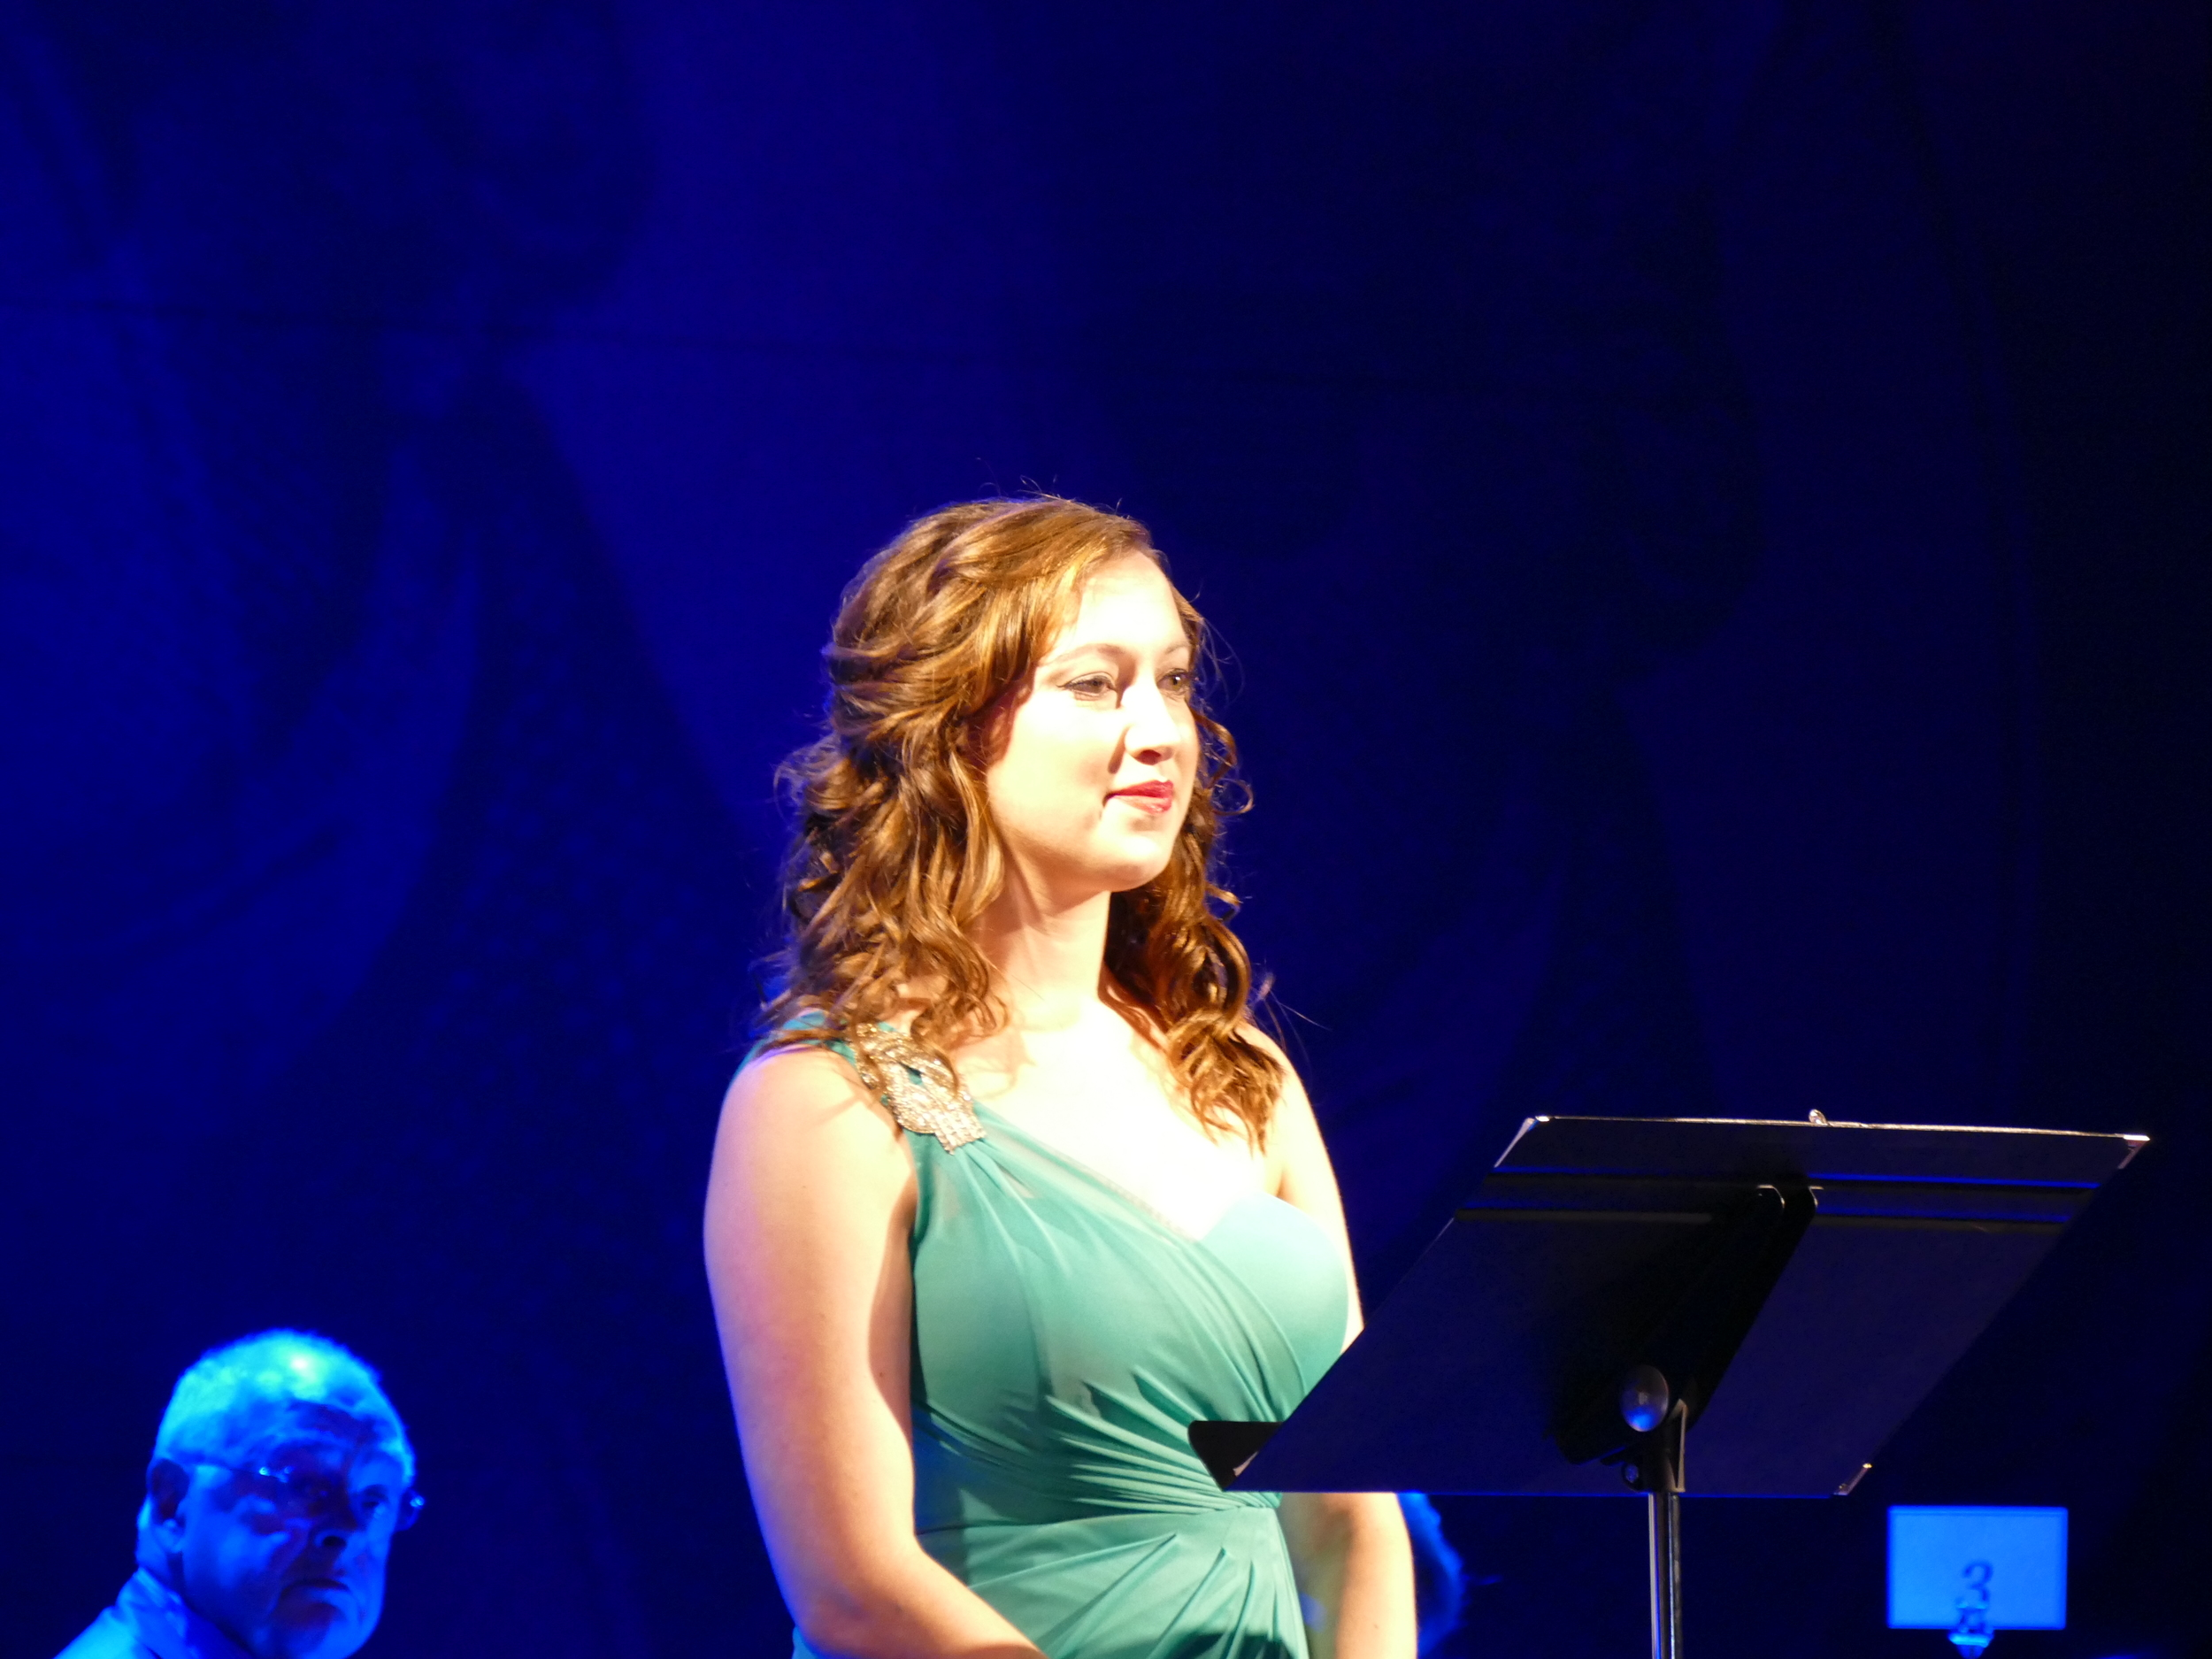 Soprano Mandy Brown